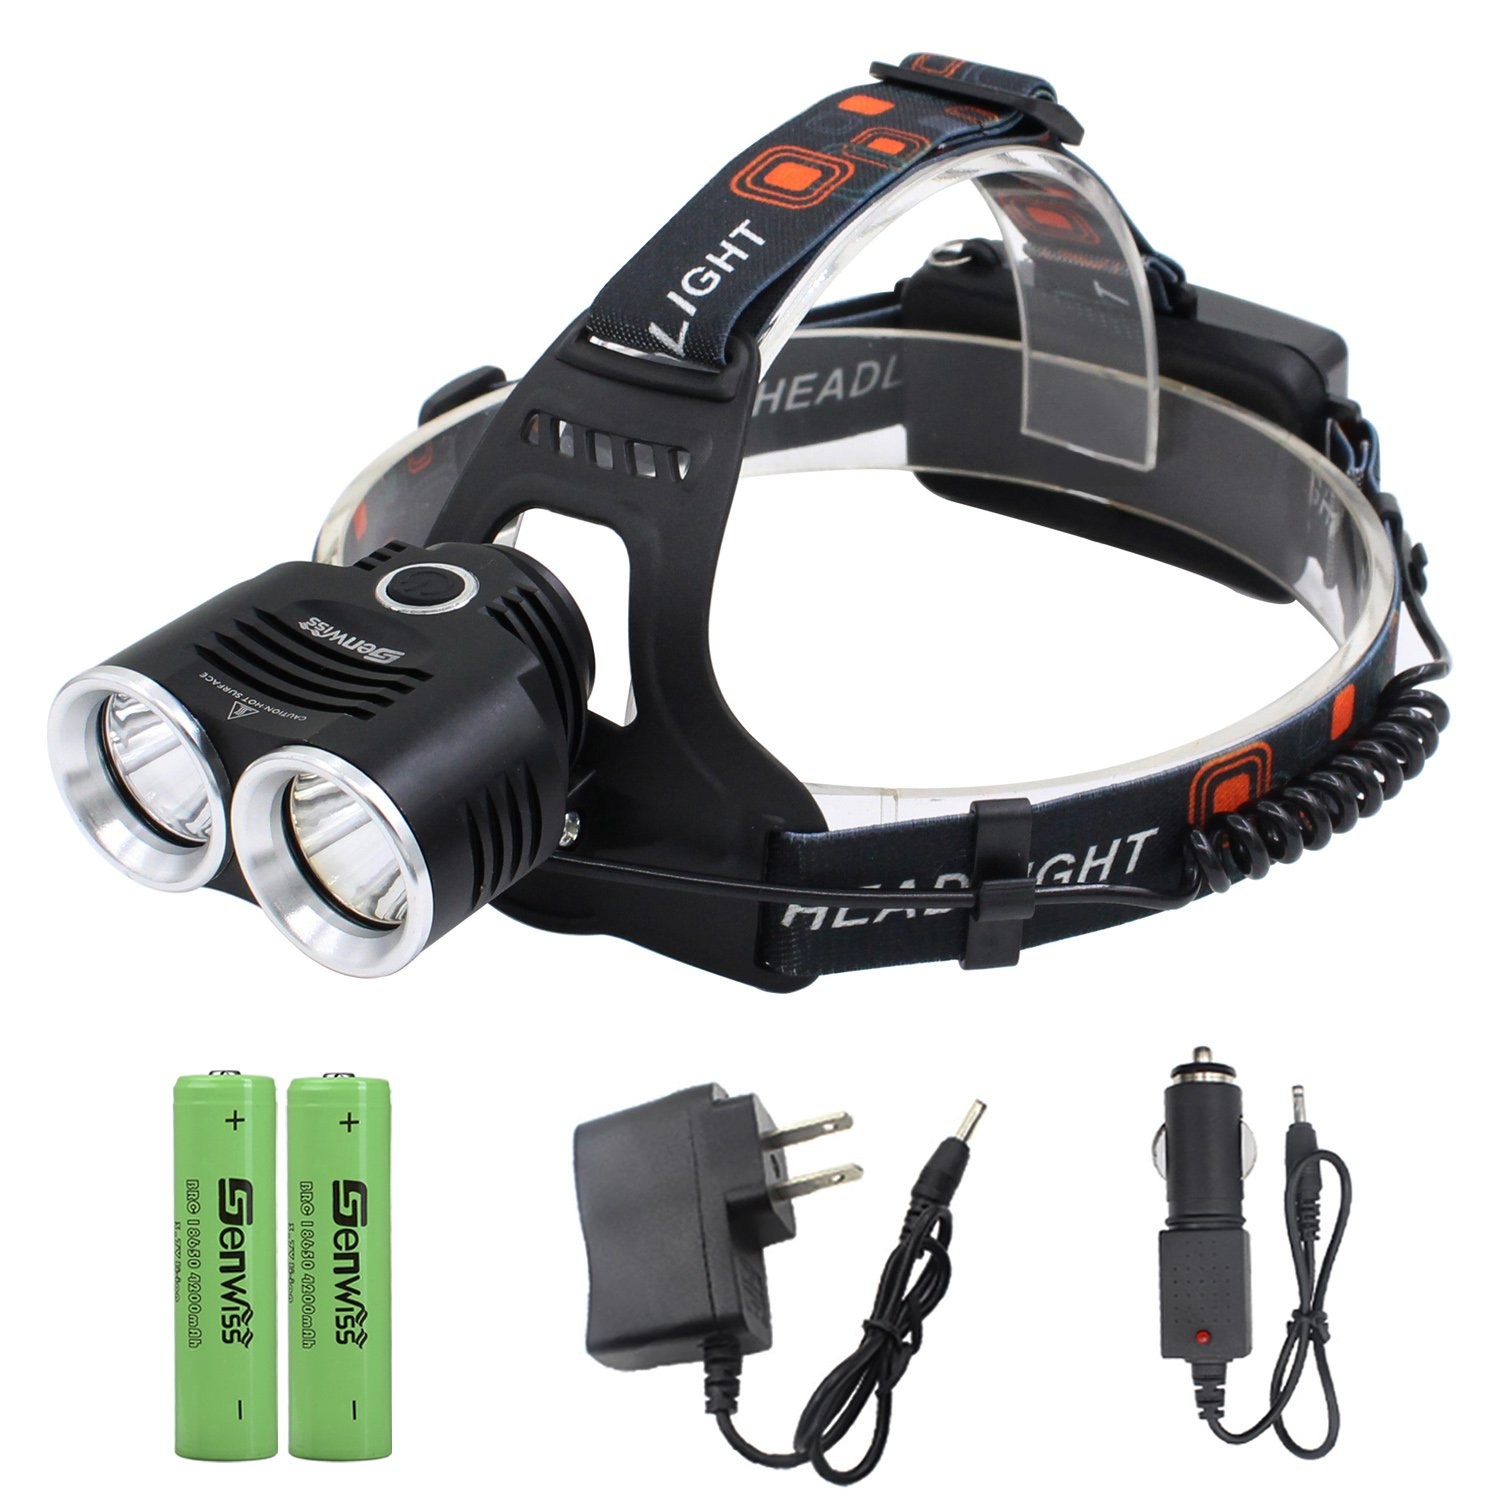 LED Headlamp Flashlight Super Bright Headlight - Genwiss 2 XML T6 6000 Lumens Waterproof Aluminum Head Lamp 3 Modes with Rechargeable Batteries, USB Cable, Car Charger, Wall Charger for Camping